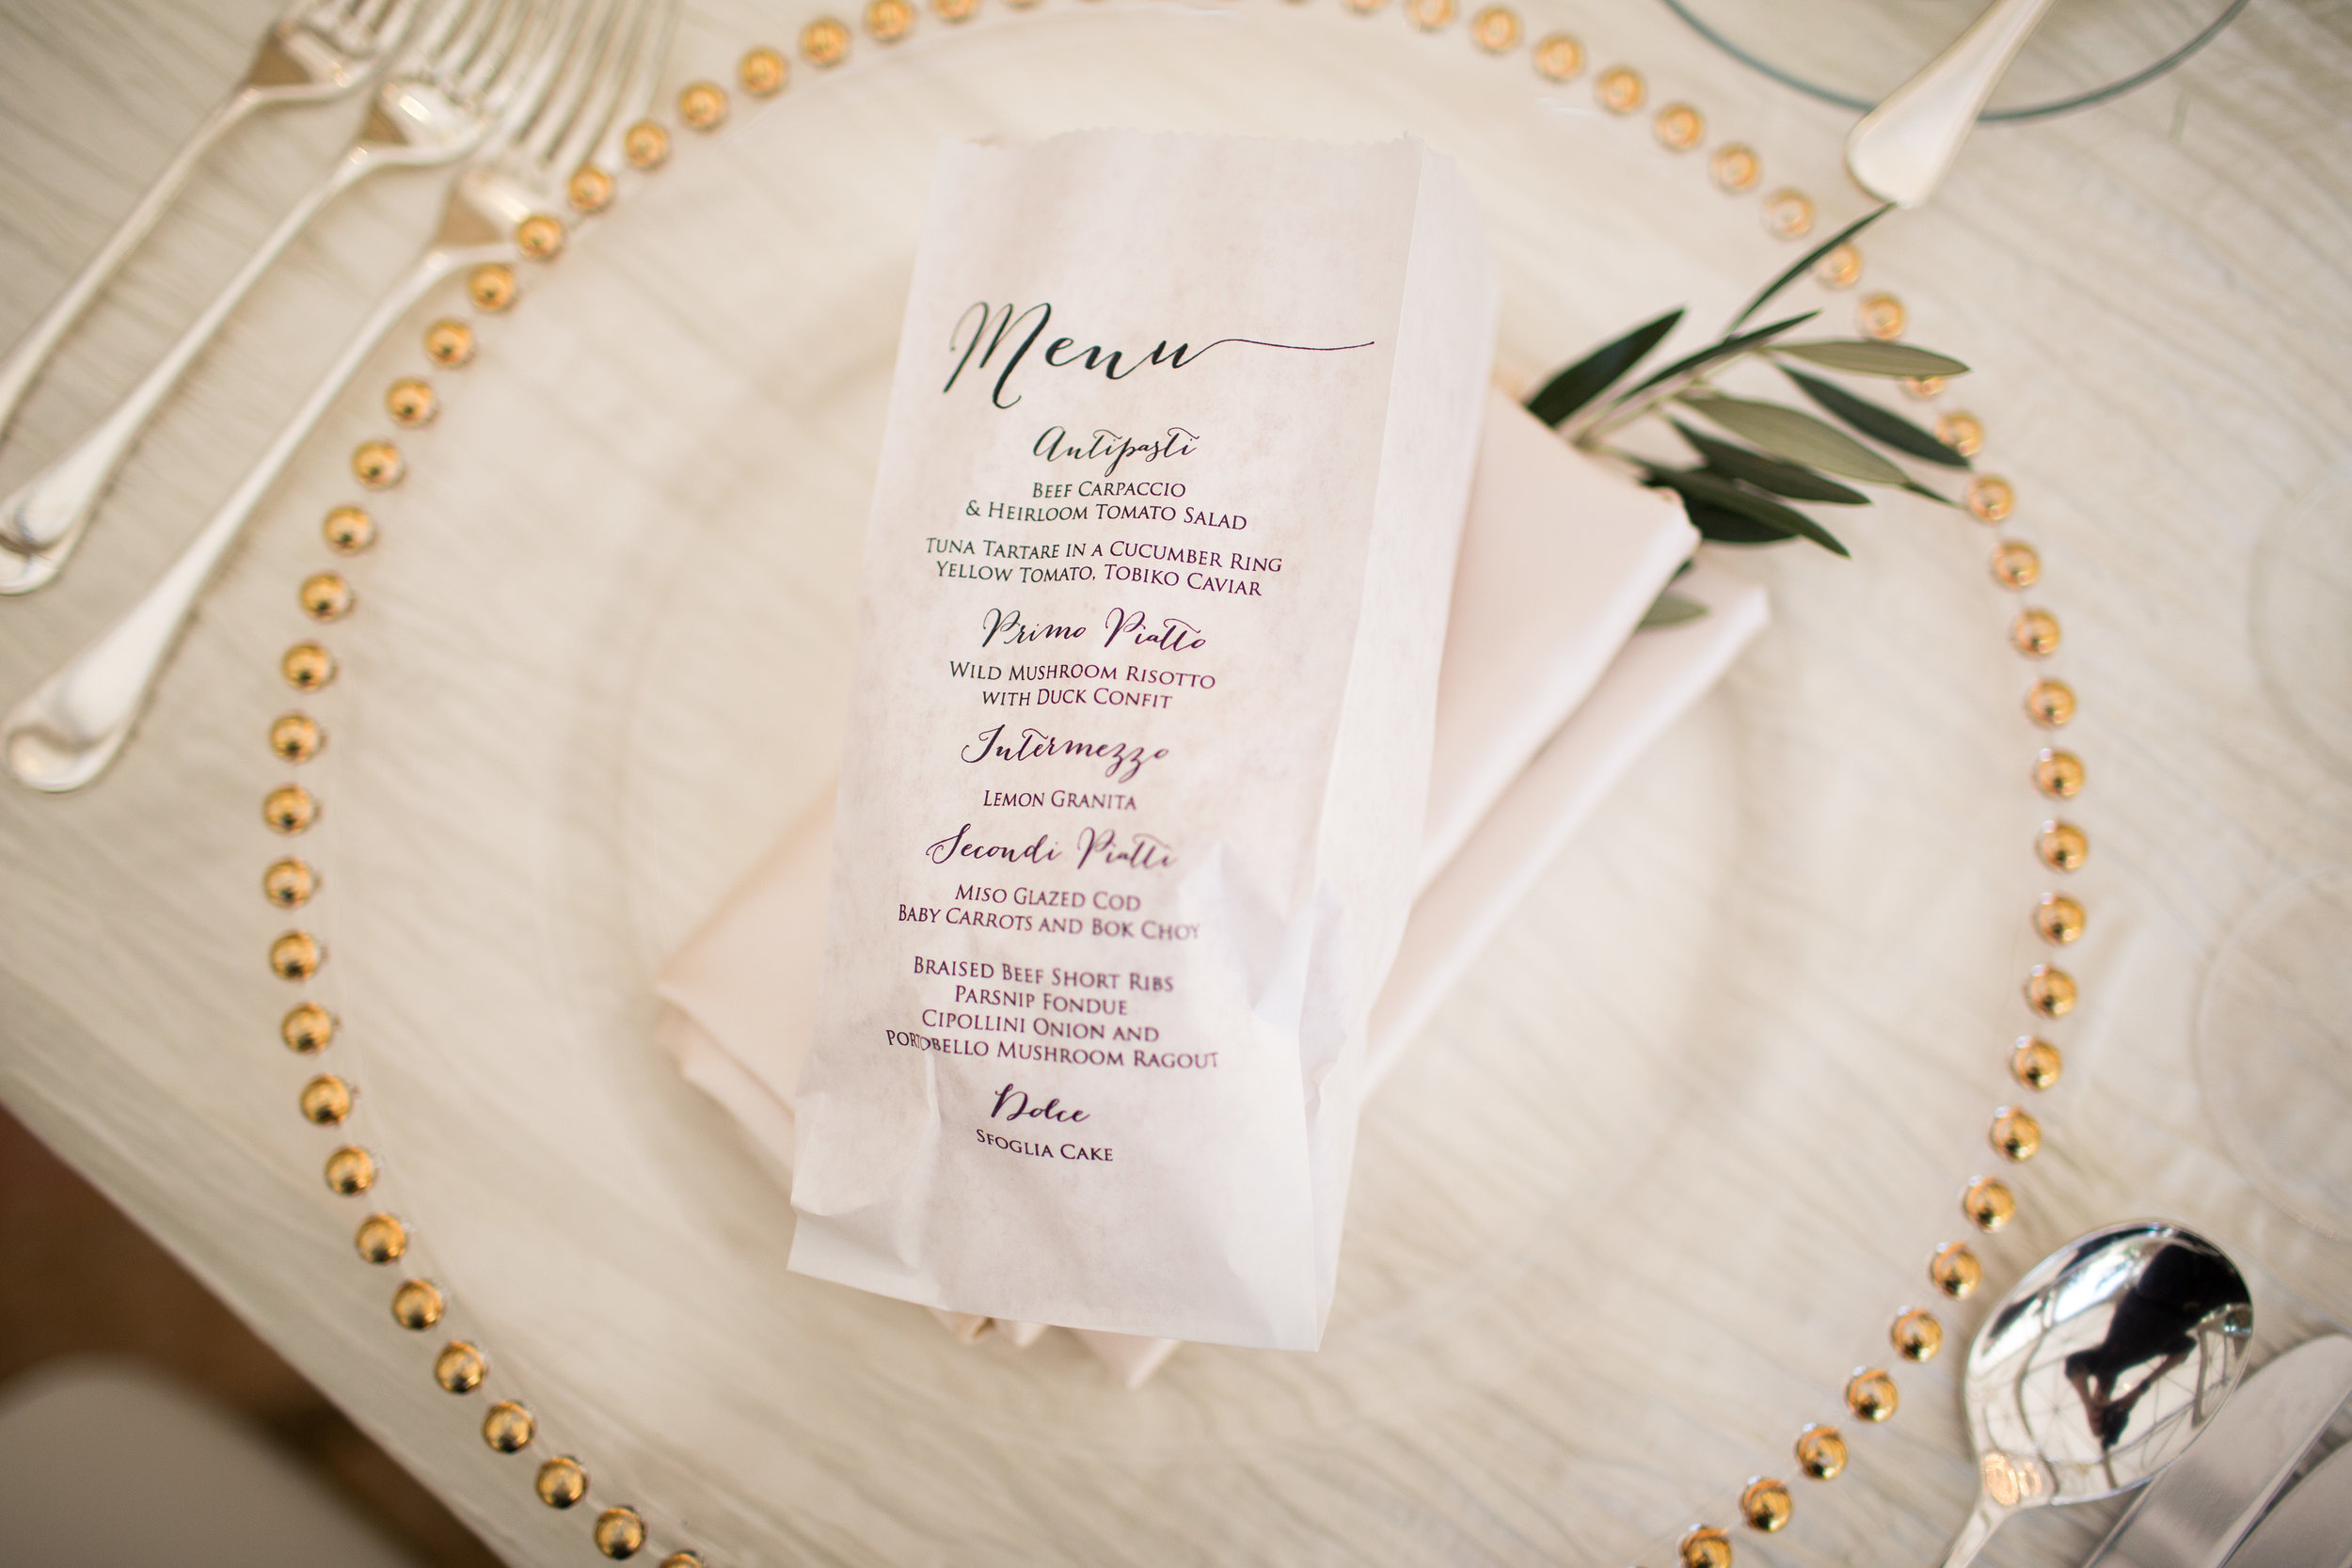 Bread bag with calligraphy menu on it.Wedding Planner:  Andrea Eppolito Events   | Photography  D2 Tuscan Wedding Photography  | Videography  M Place Productions  | Venue & Catering:  Bellagio  | Floral & Decor:  Destinations by Design  | Lighting:  LED Unplugged   | Music: Classical Entertainment &  DJ Mike Fox  | Hair & Make Up:  Amelia C & Co